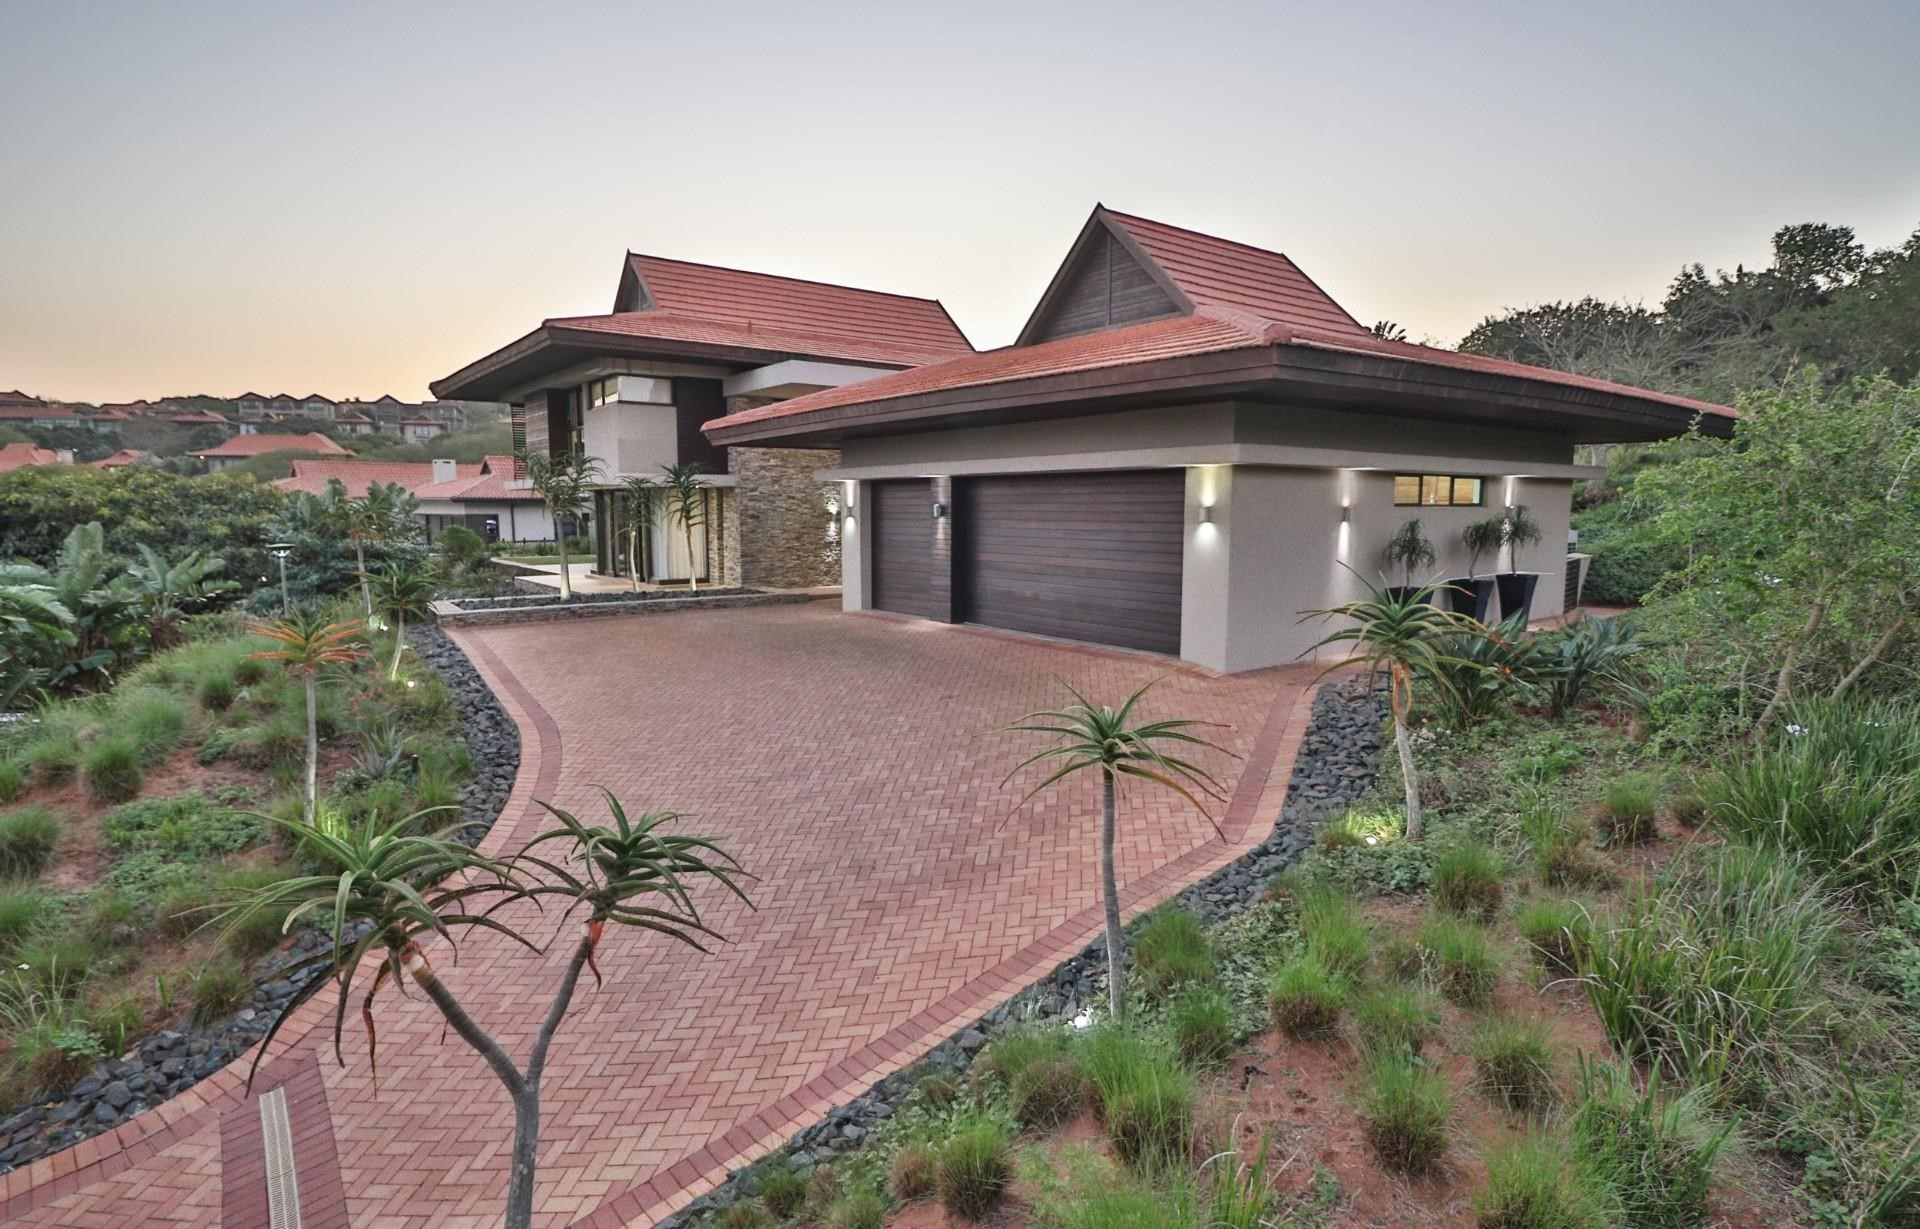 4 Bedroom House to Rent in Ballito Central